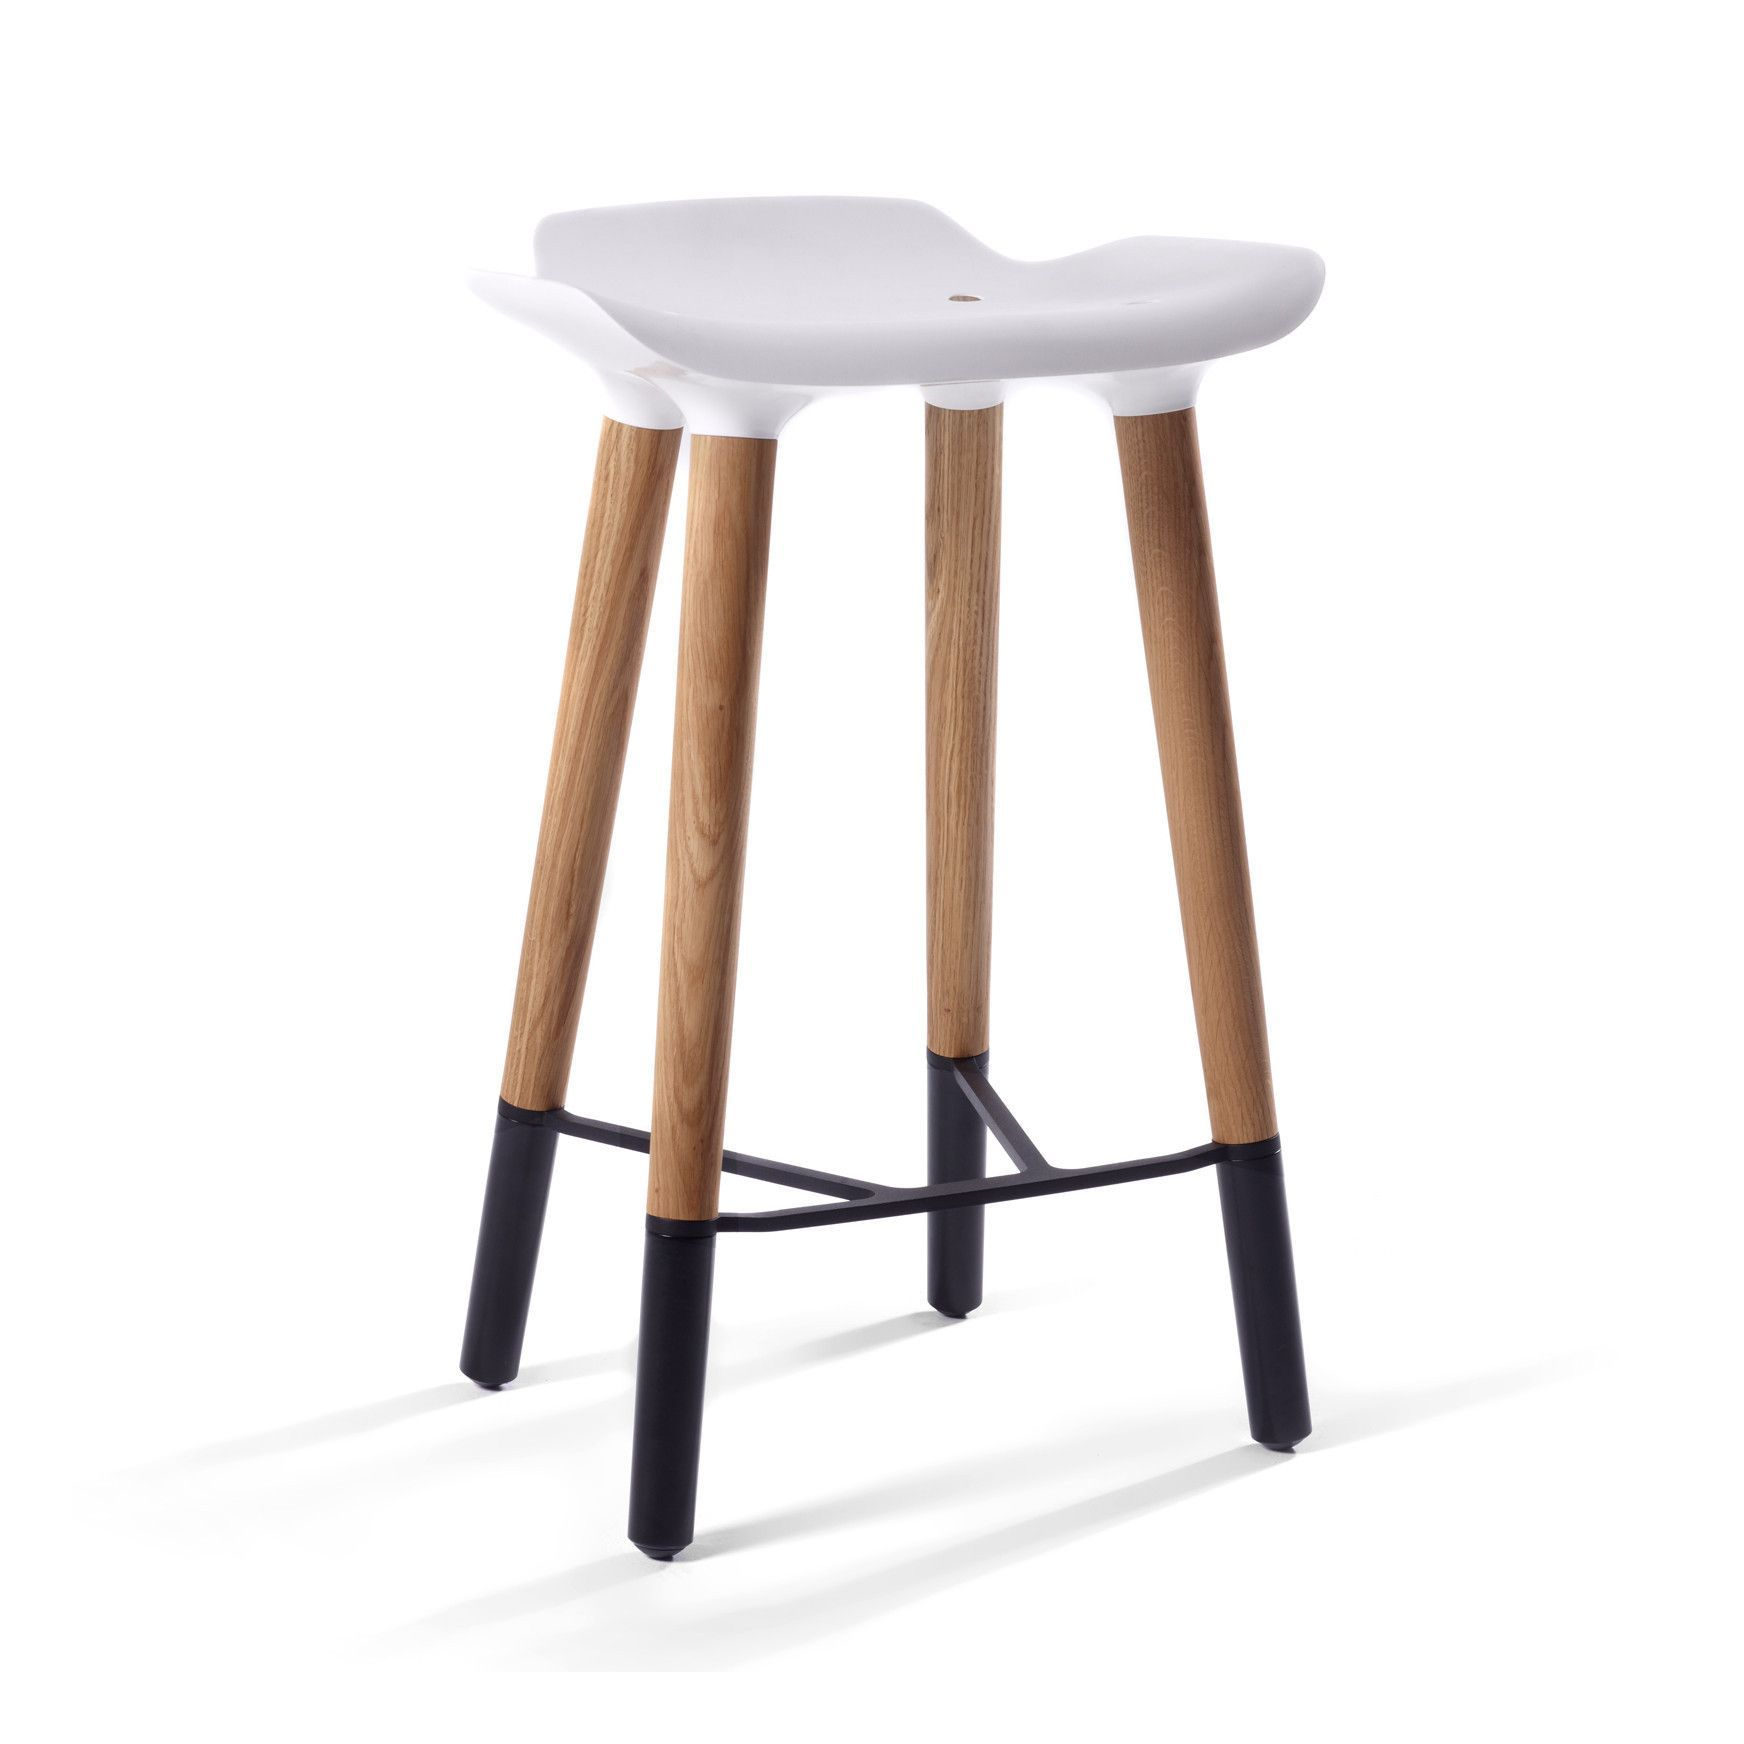 pluto danish modern counter stool with white seat - Modern Counter Stools